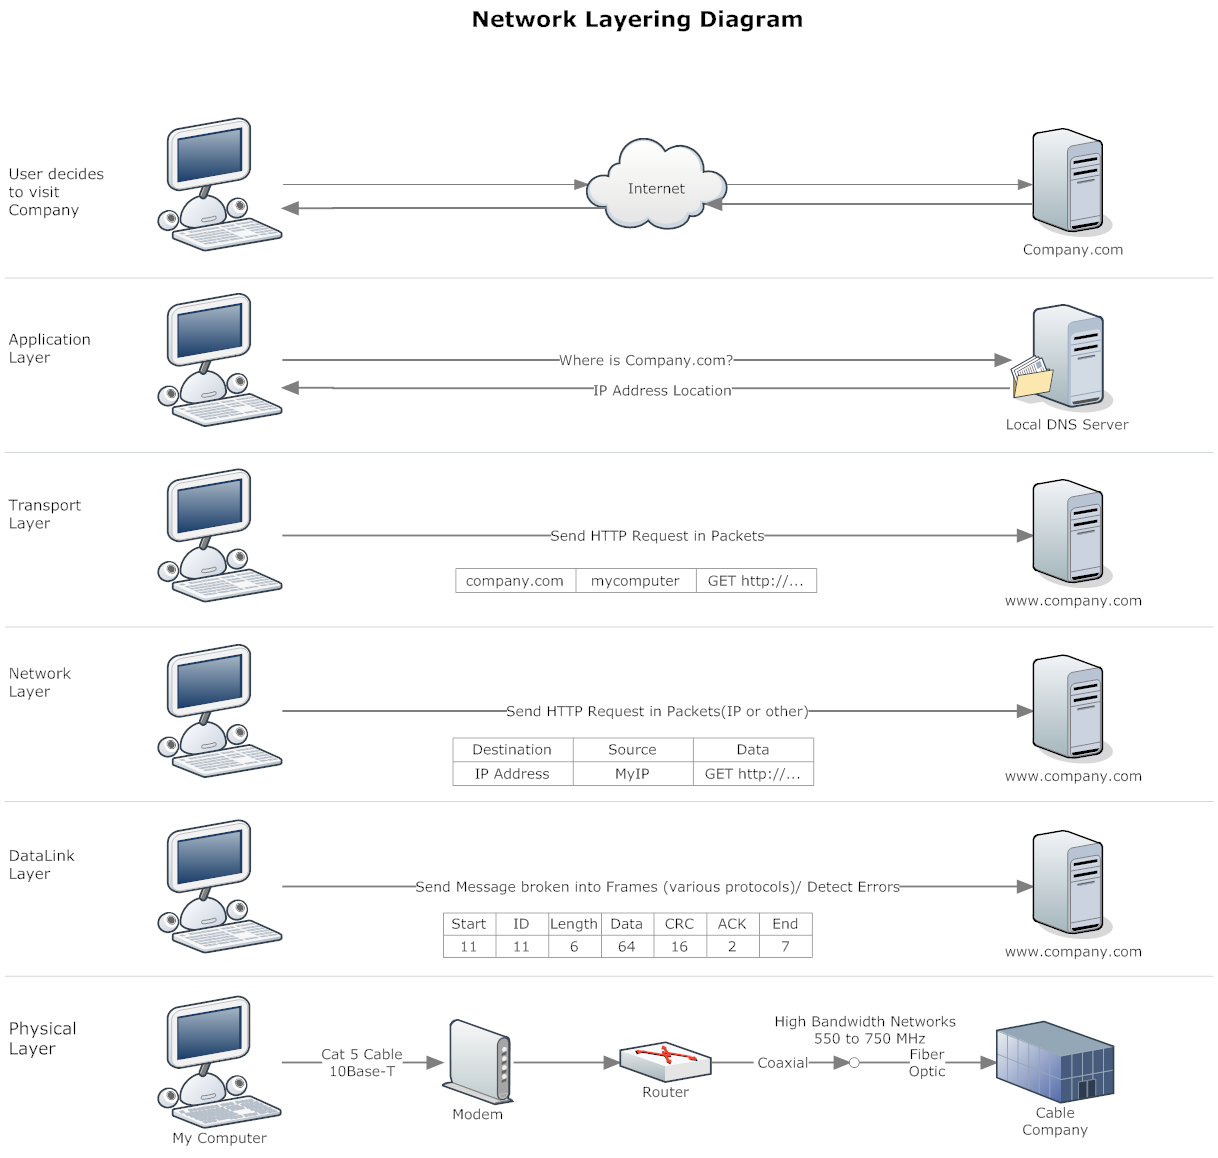 Network Diagram Example - Network Layering Diagram | Network